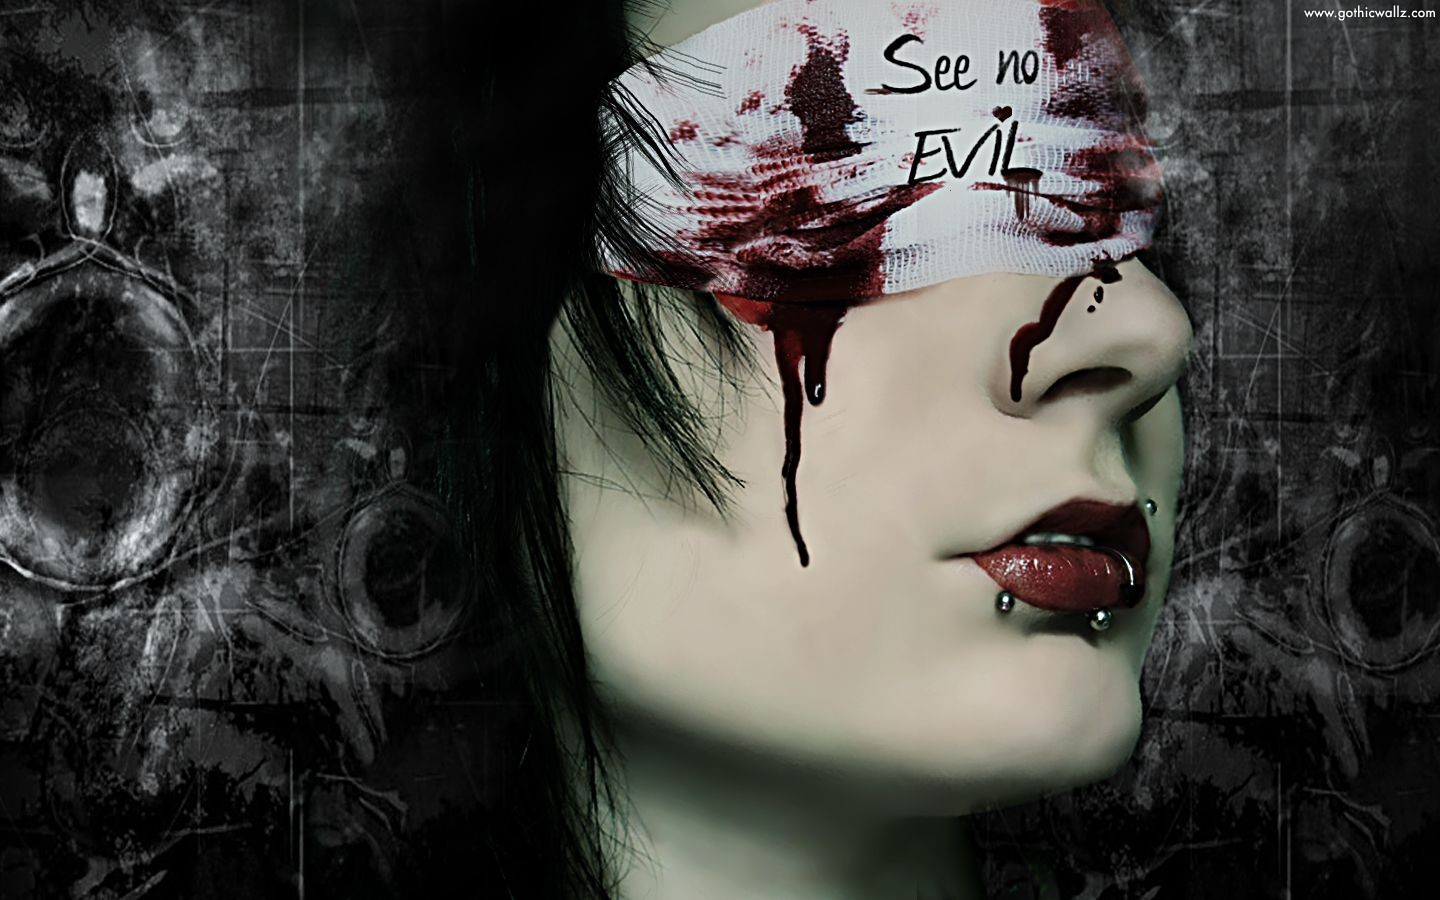 See No Evil | Gothic Wallpaper Download